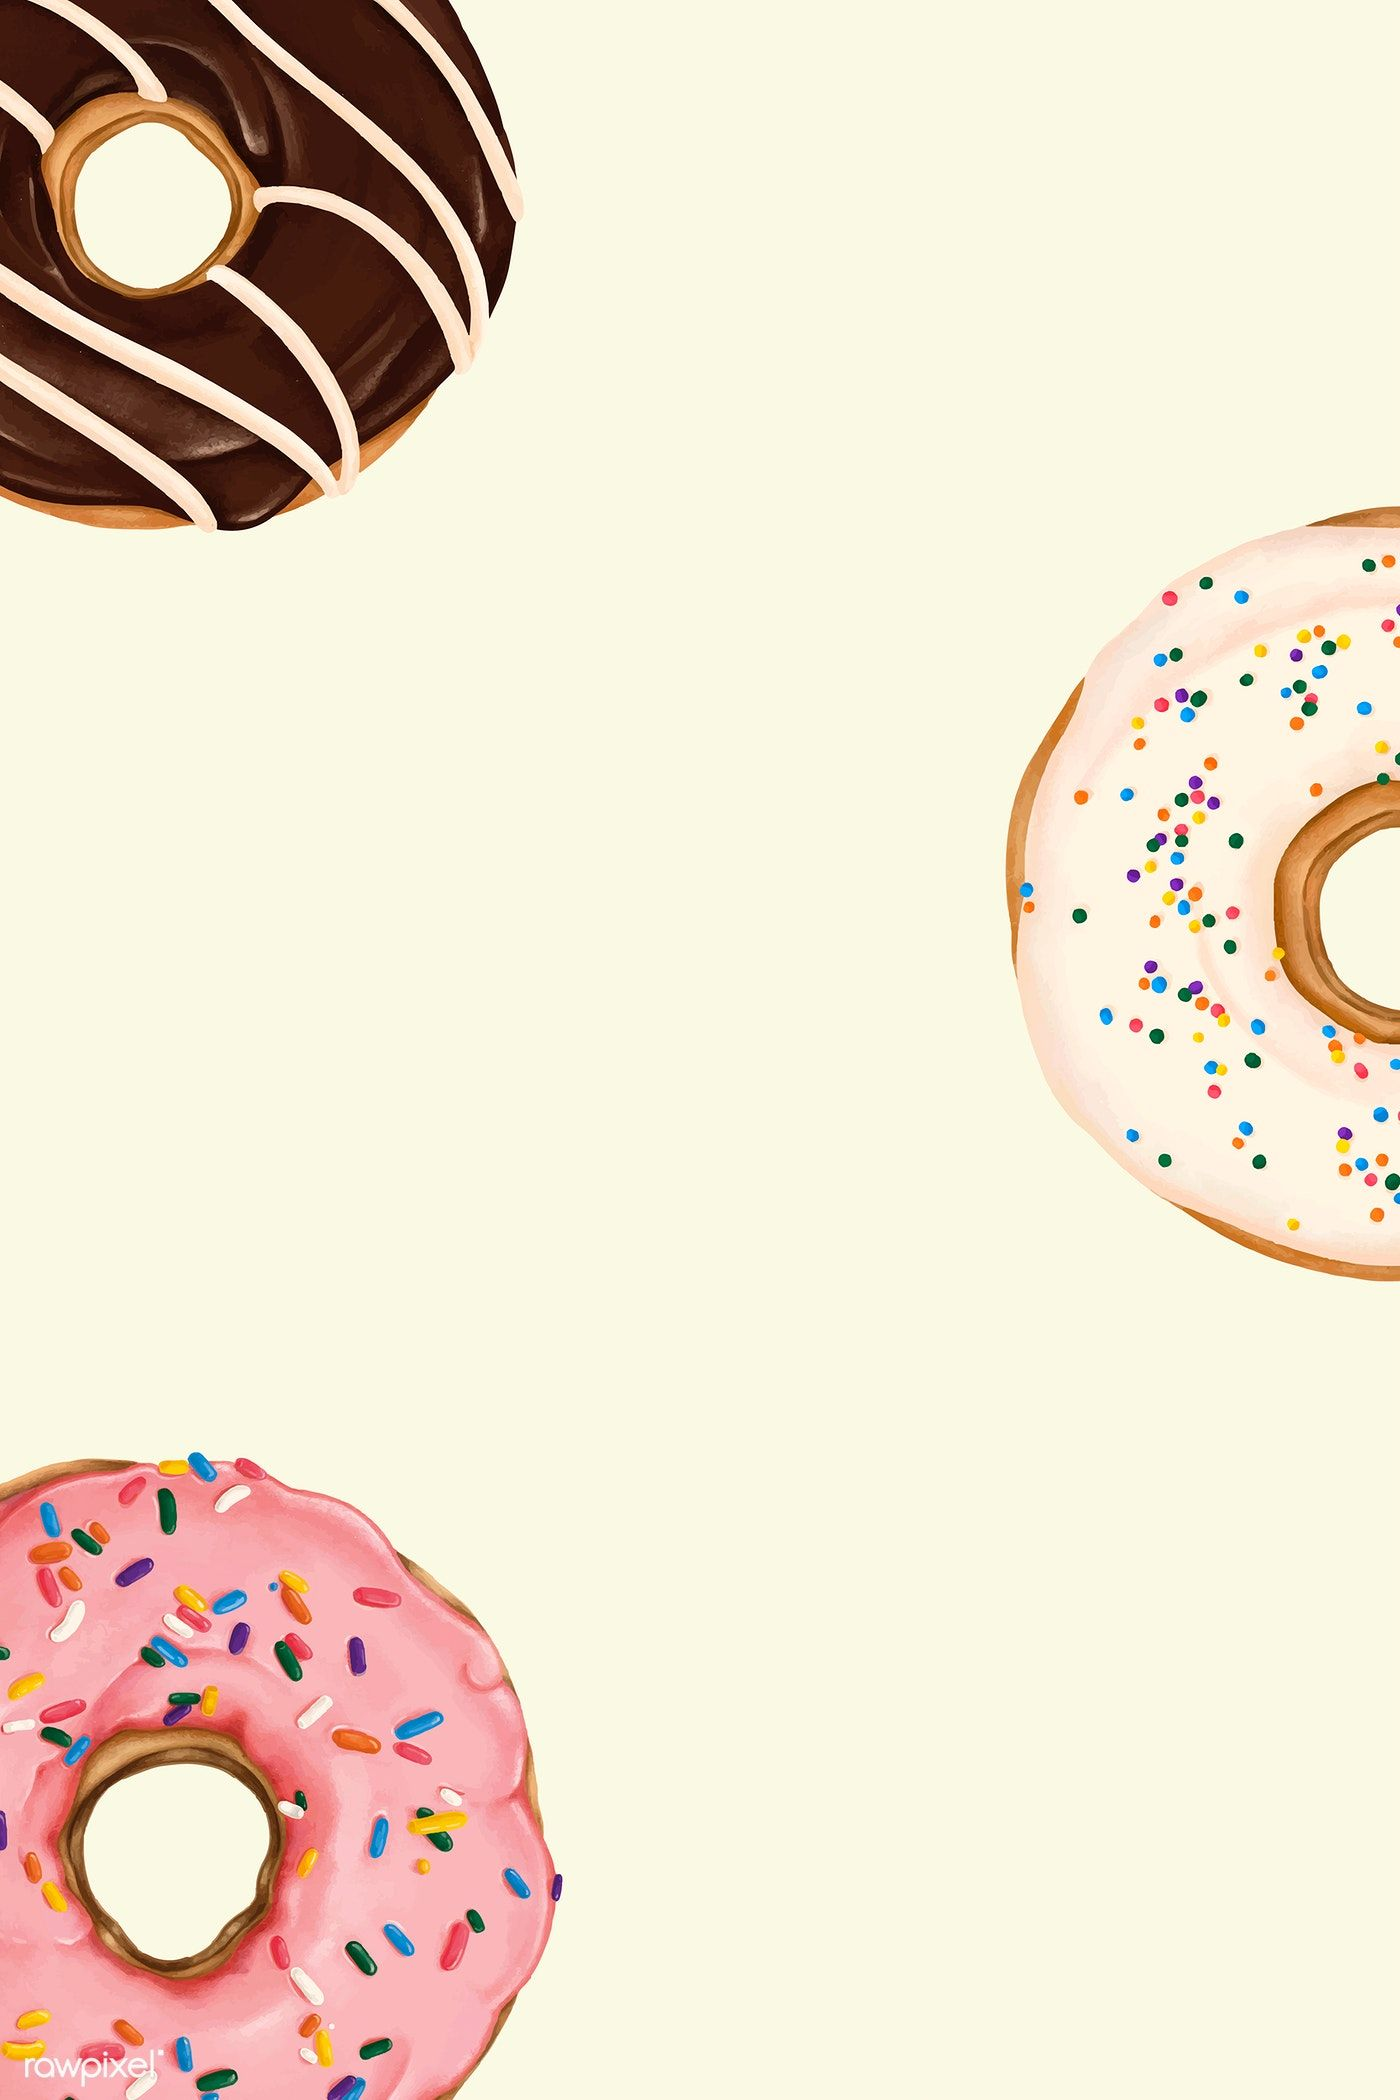 Doughnuts patterned on beige background vector free